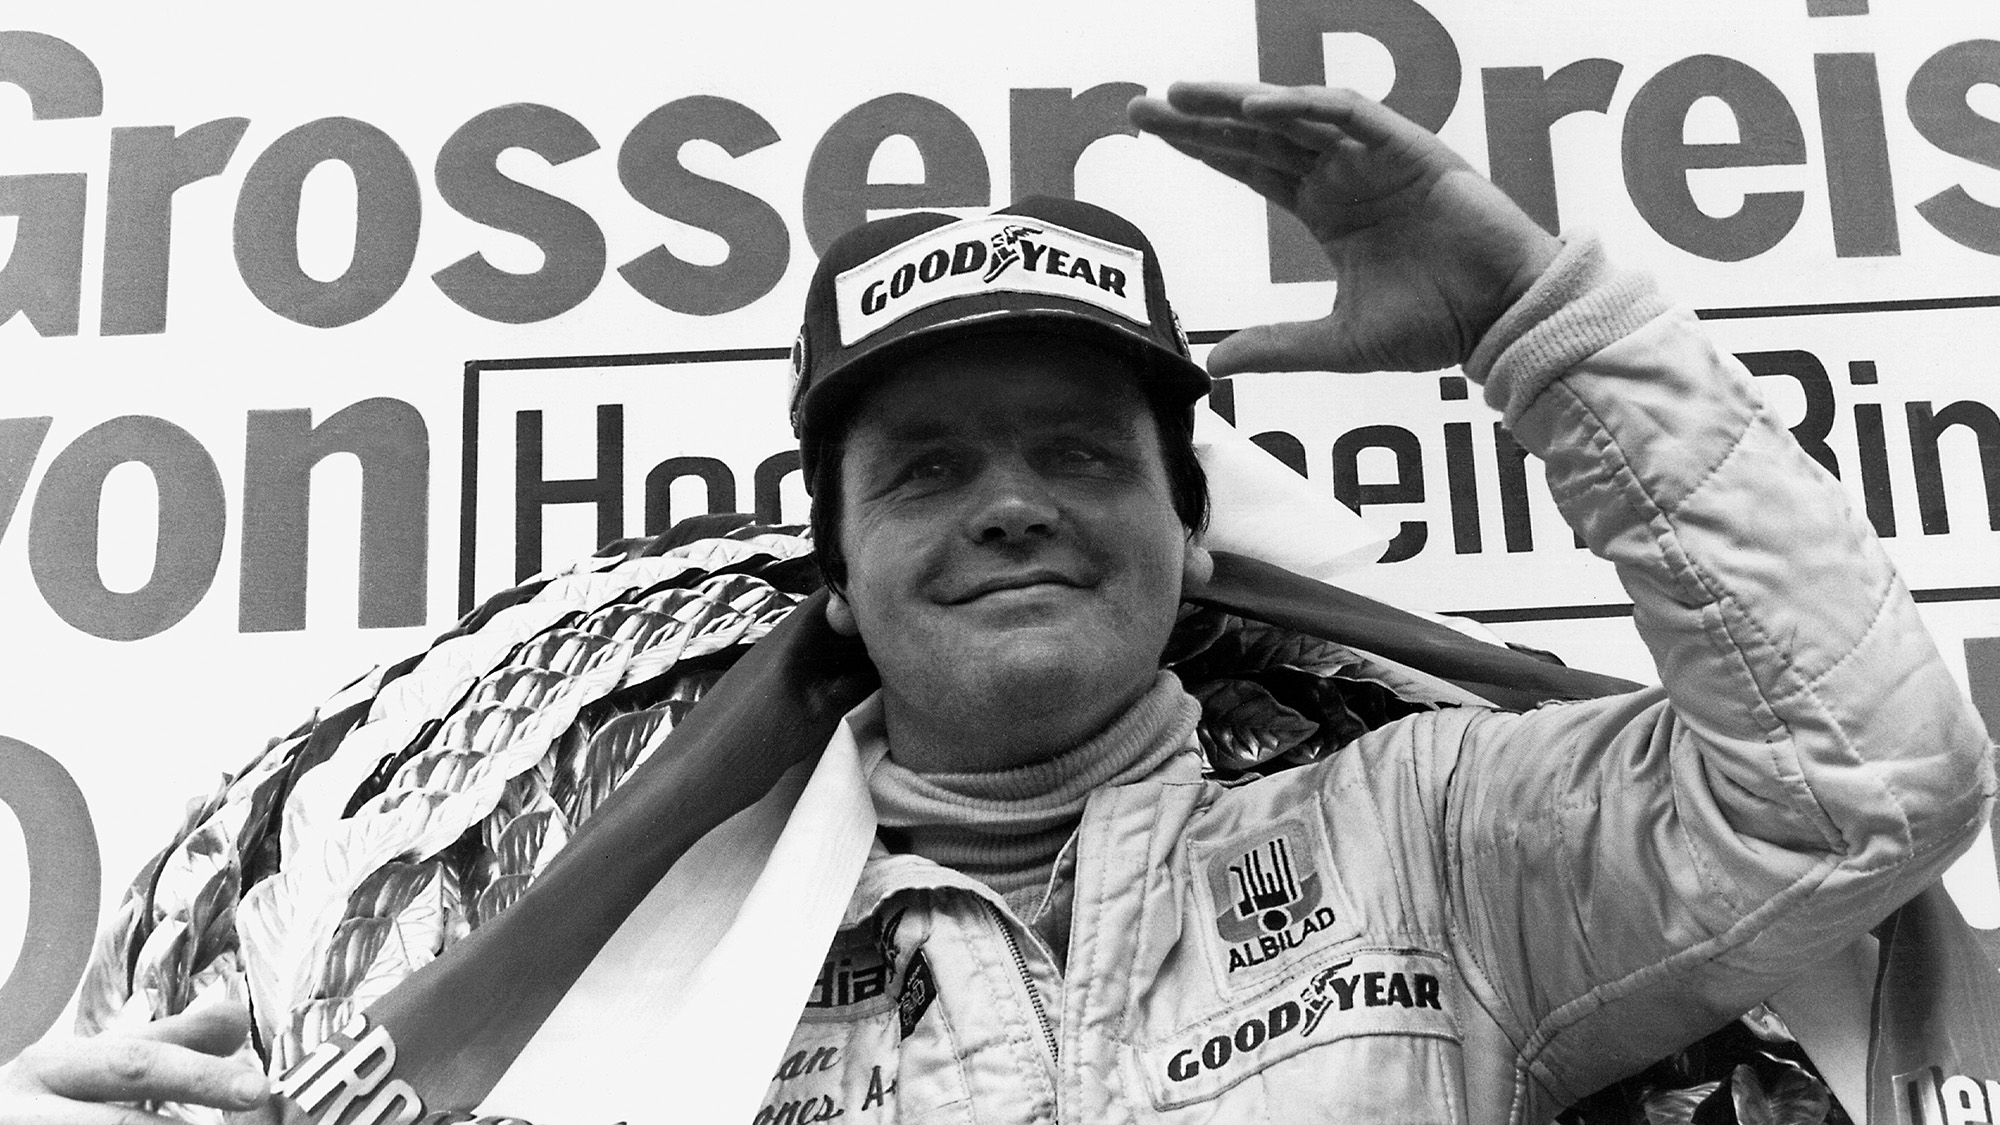 Alan Jones on the podium for Williams after the 1979 F1 German Grand prix